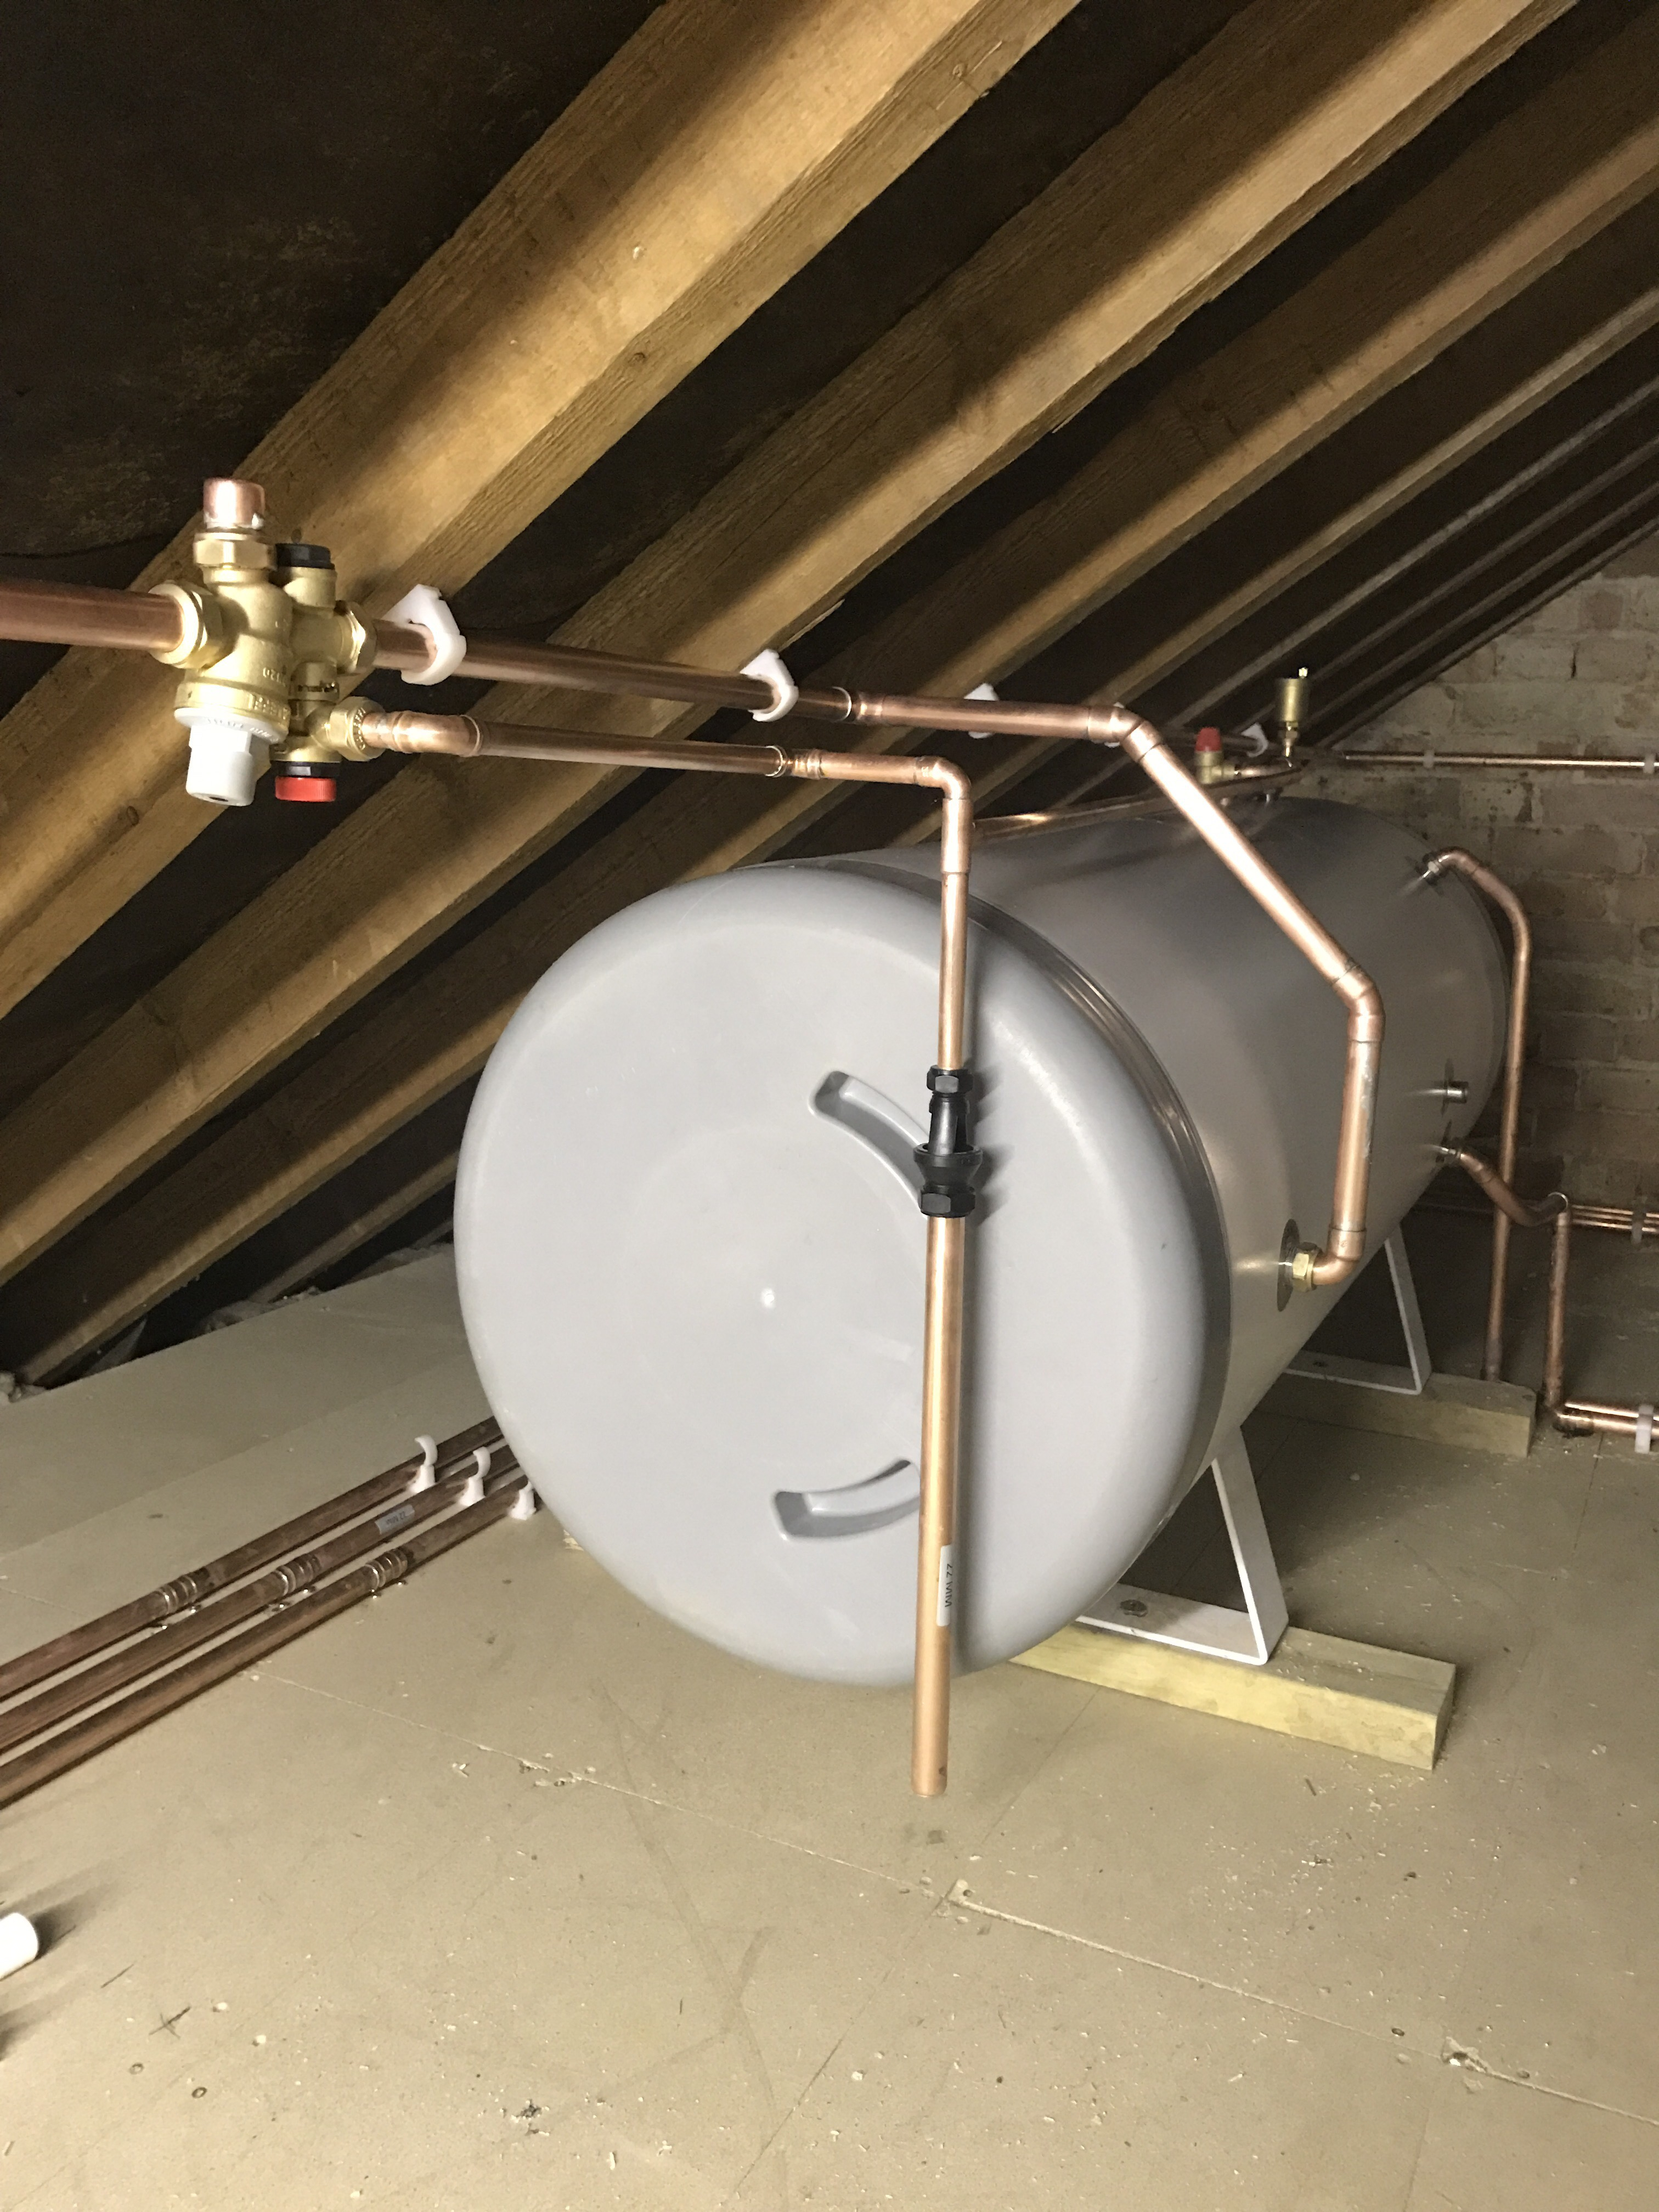 Unvented cylinder in the loft